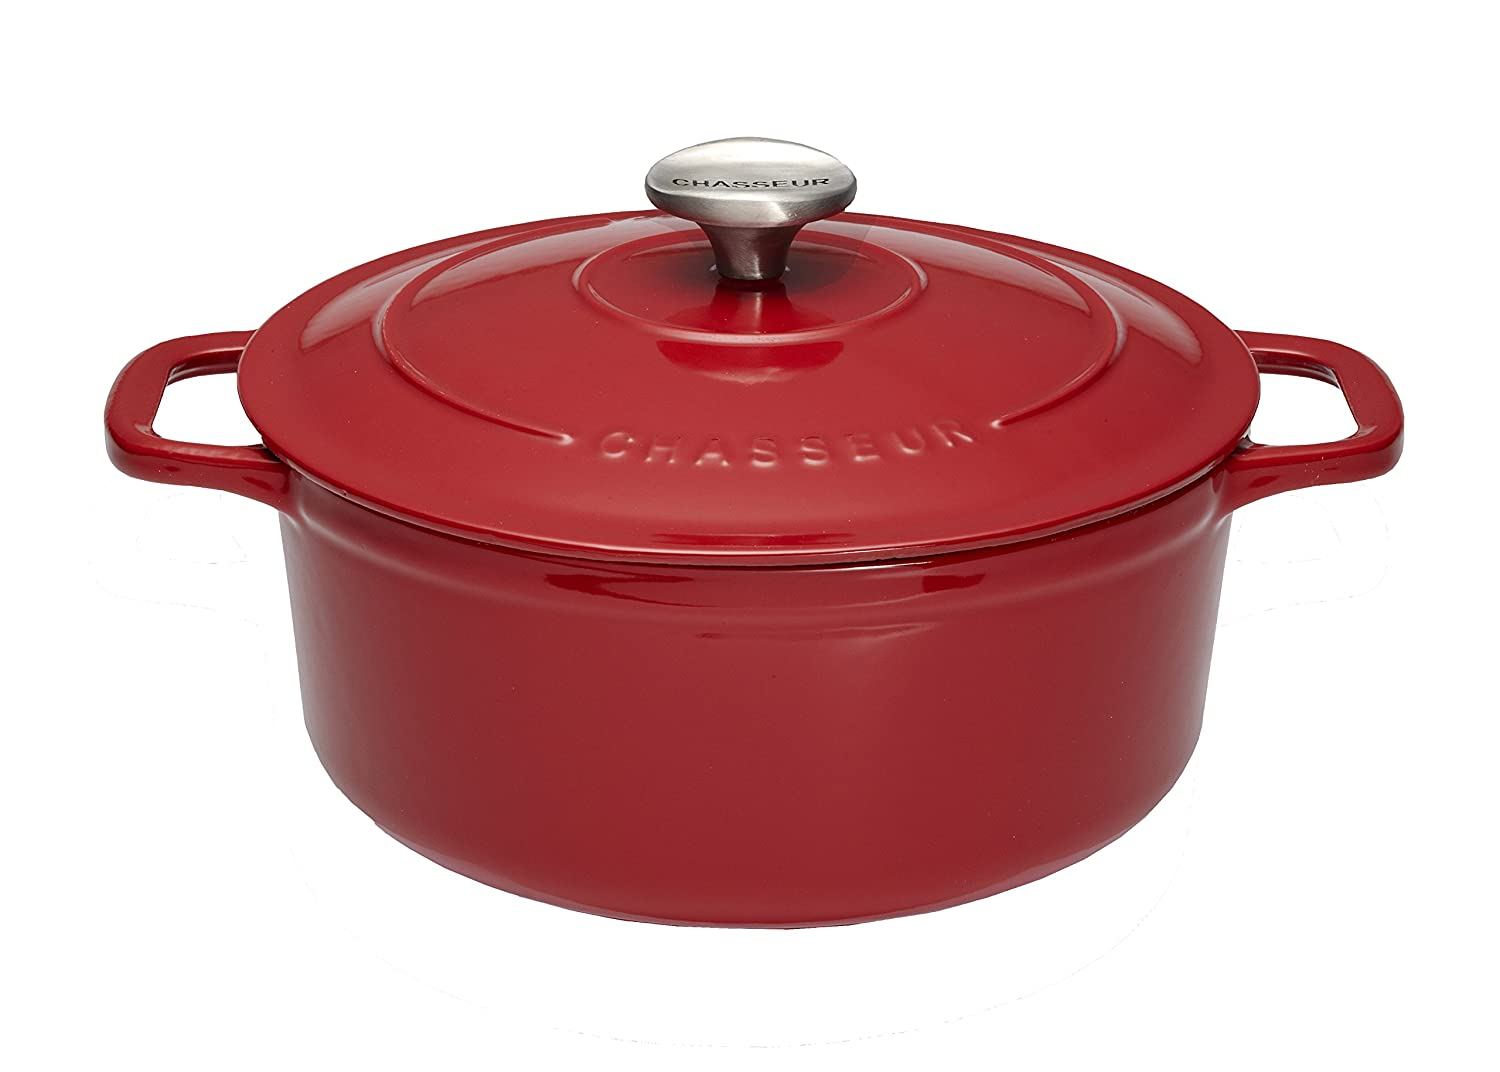 Chasseur 3.25-quart Red French Enameled Cast Iron Round Dutch Oven